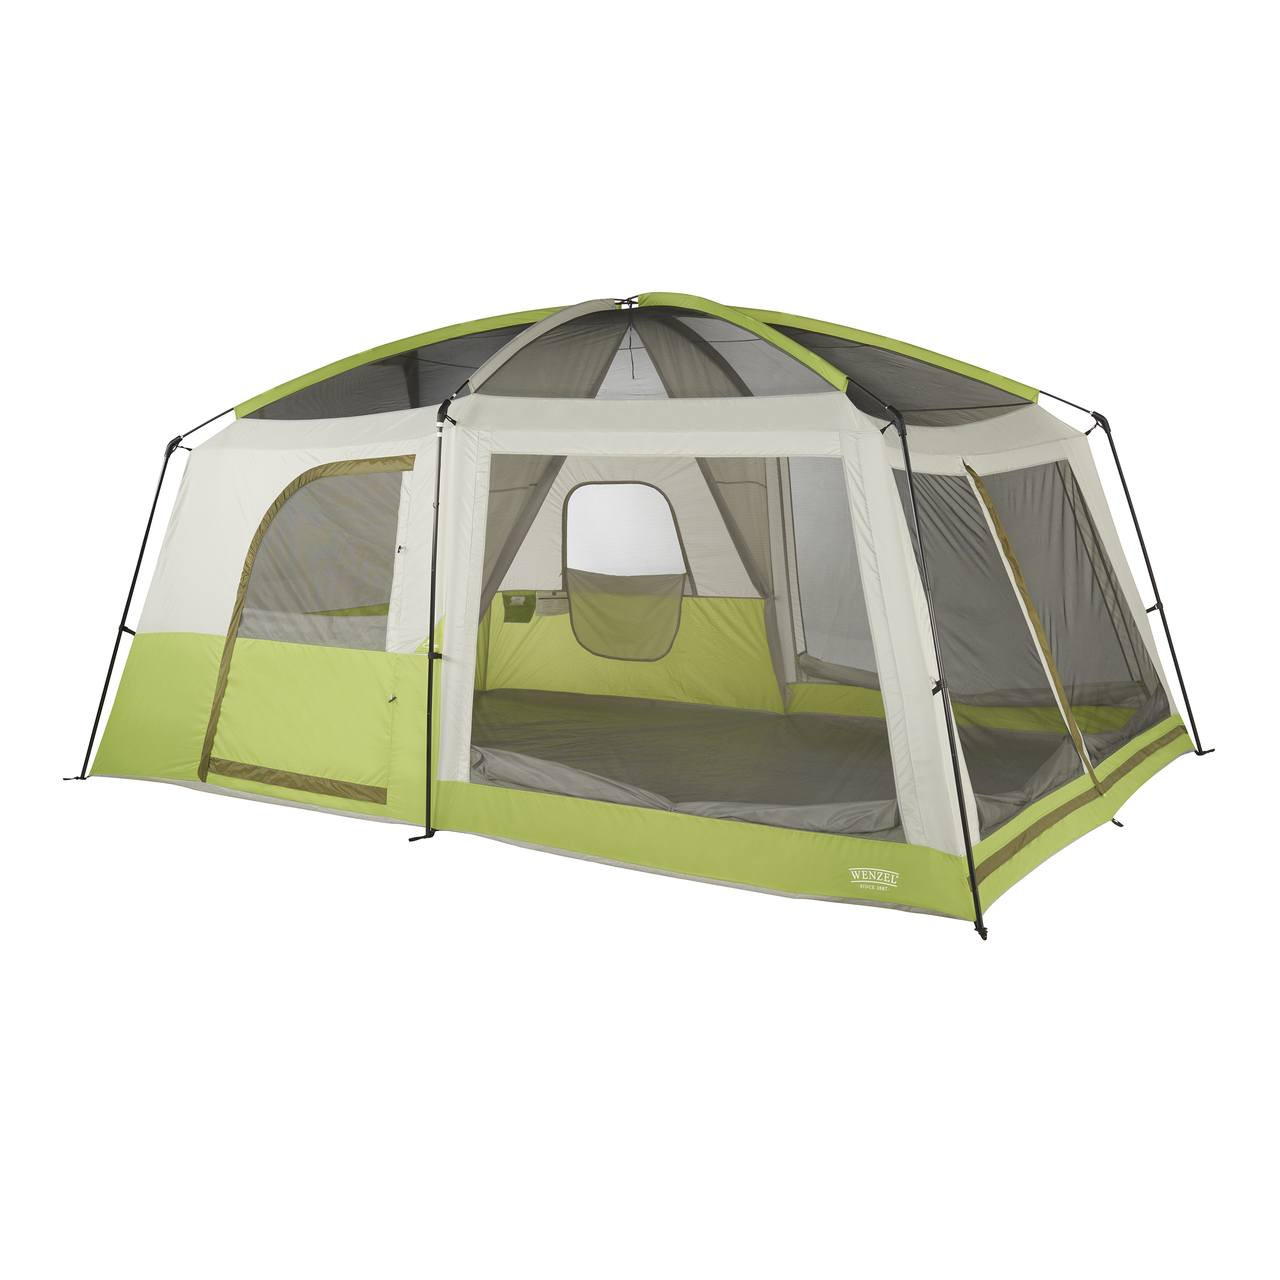 Wenzel Eldorado 10 tent, light green and gray, completely set up with the rain fly off and the inside tent doors not set up